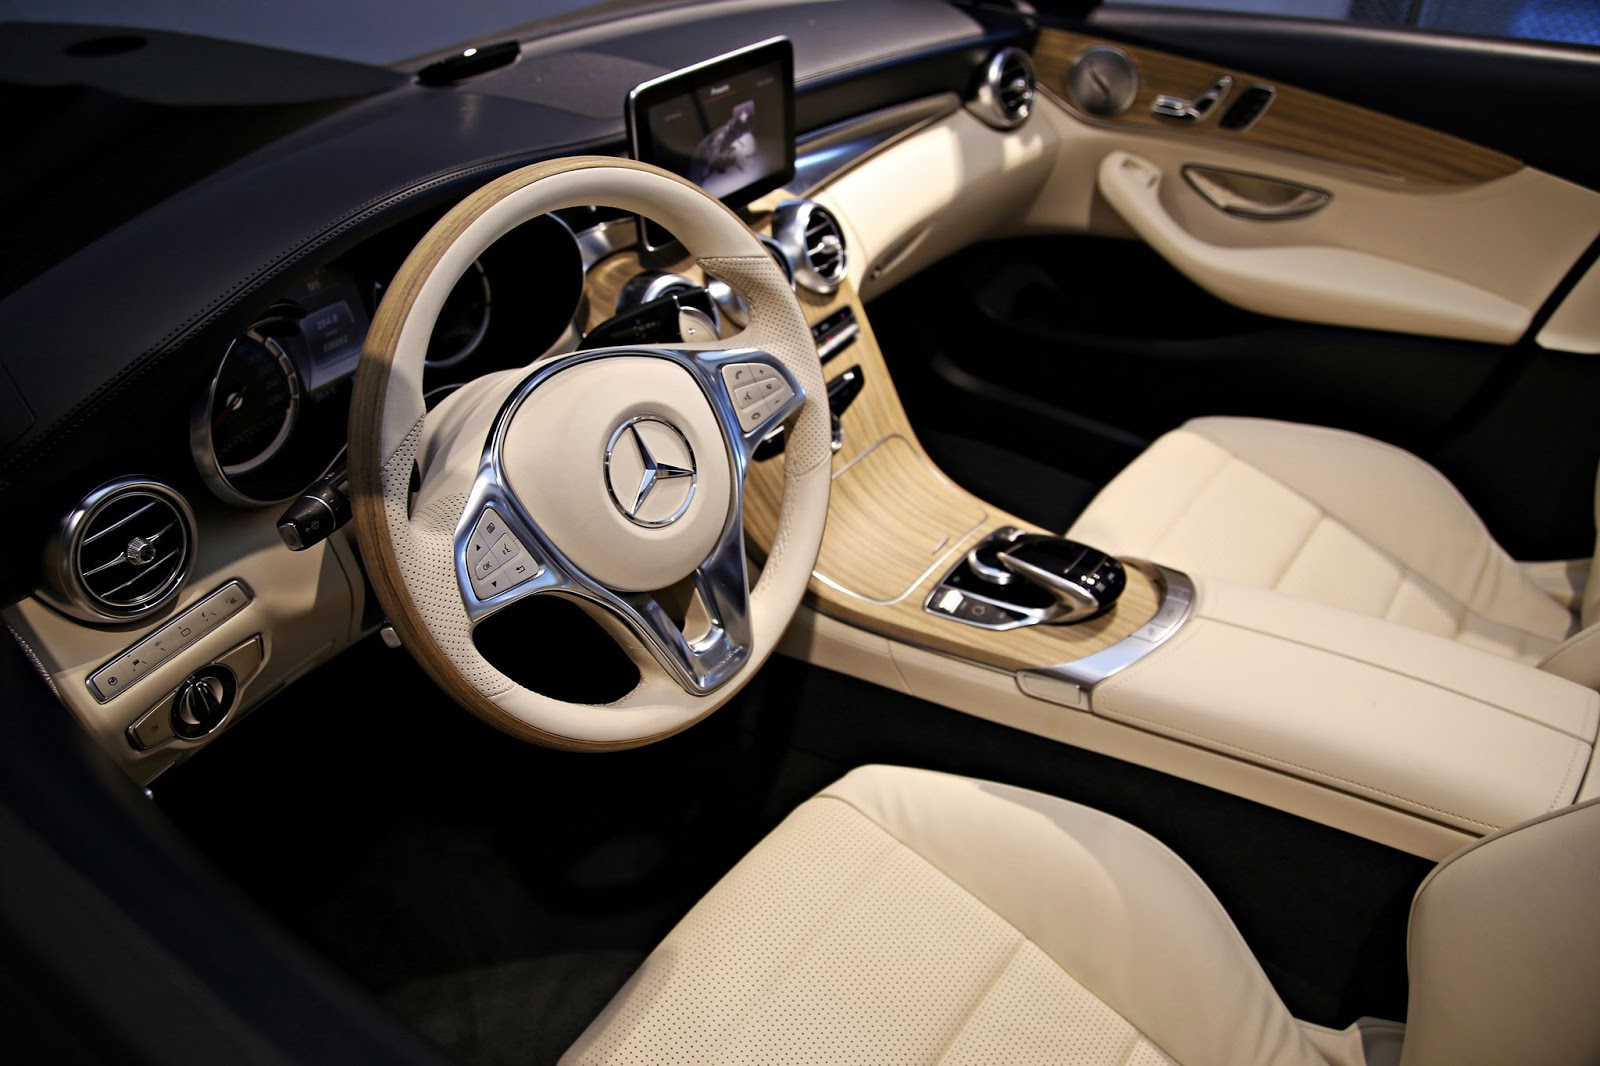 Pre Production Mercedes Benz C Class Cabriolet Interior Previewed